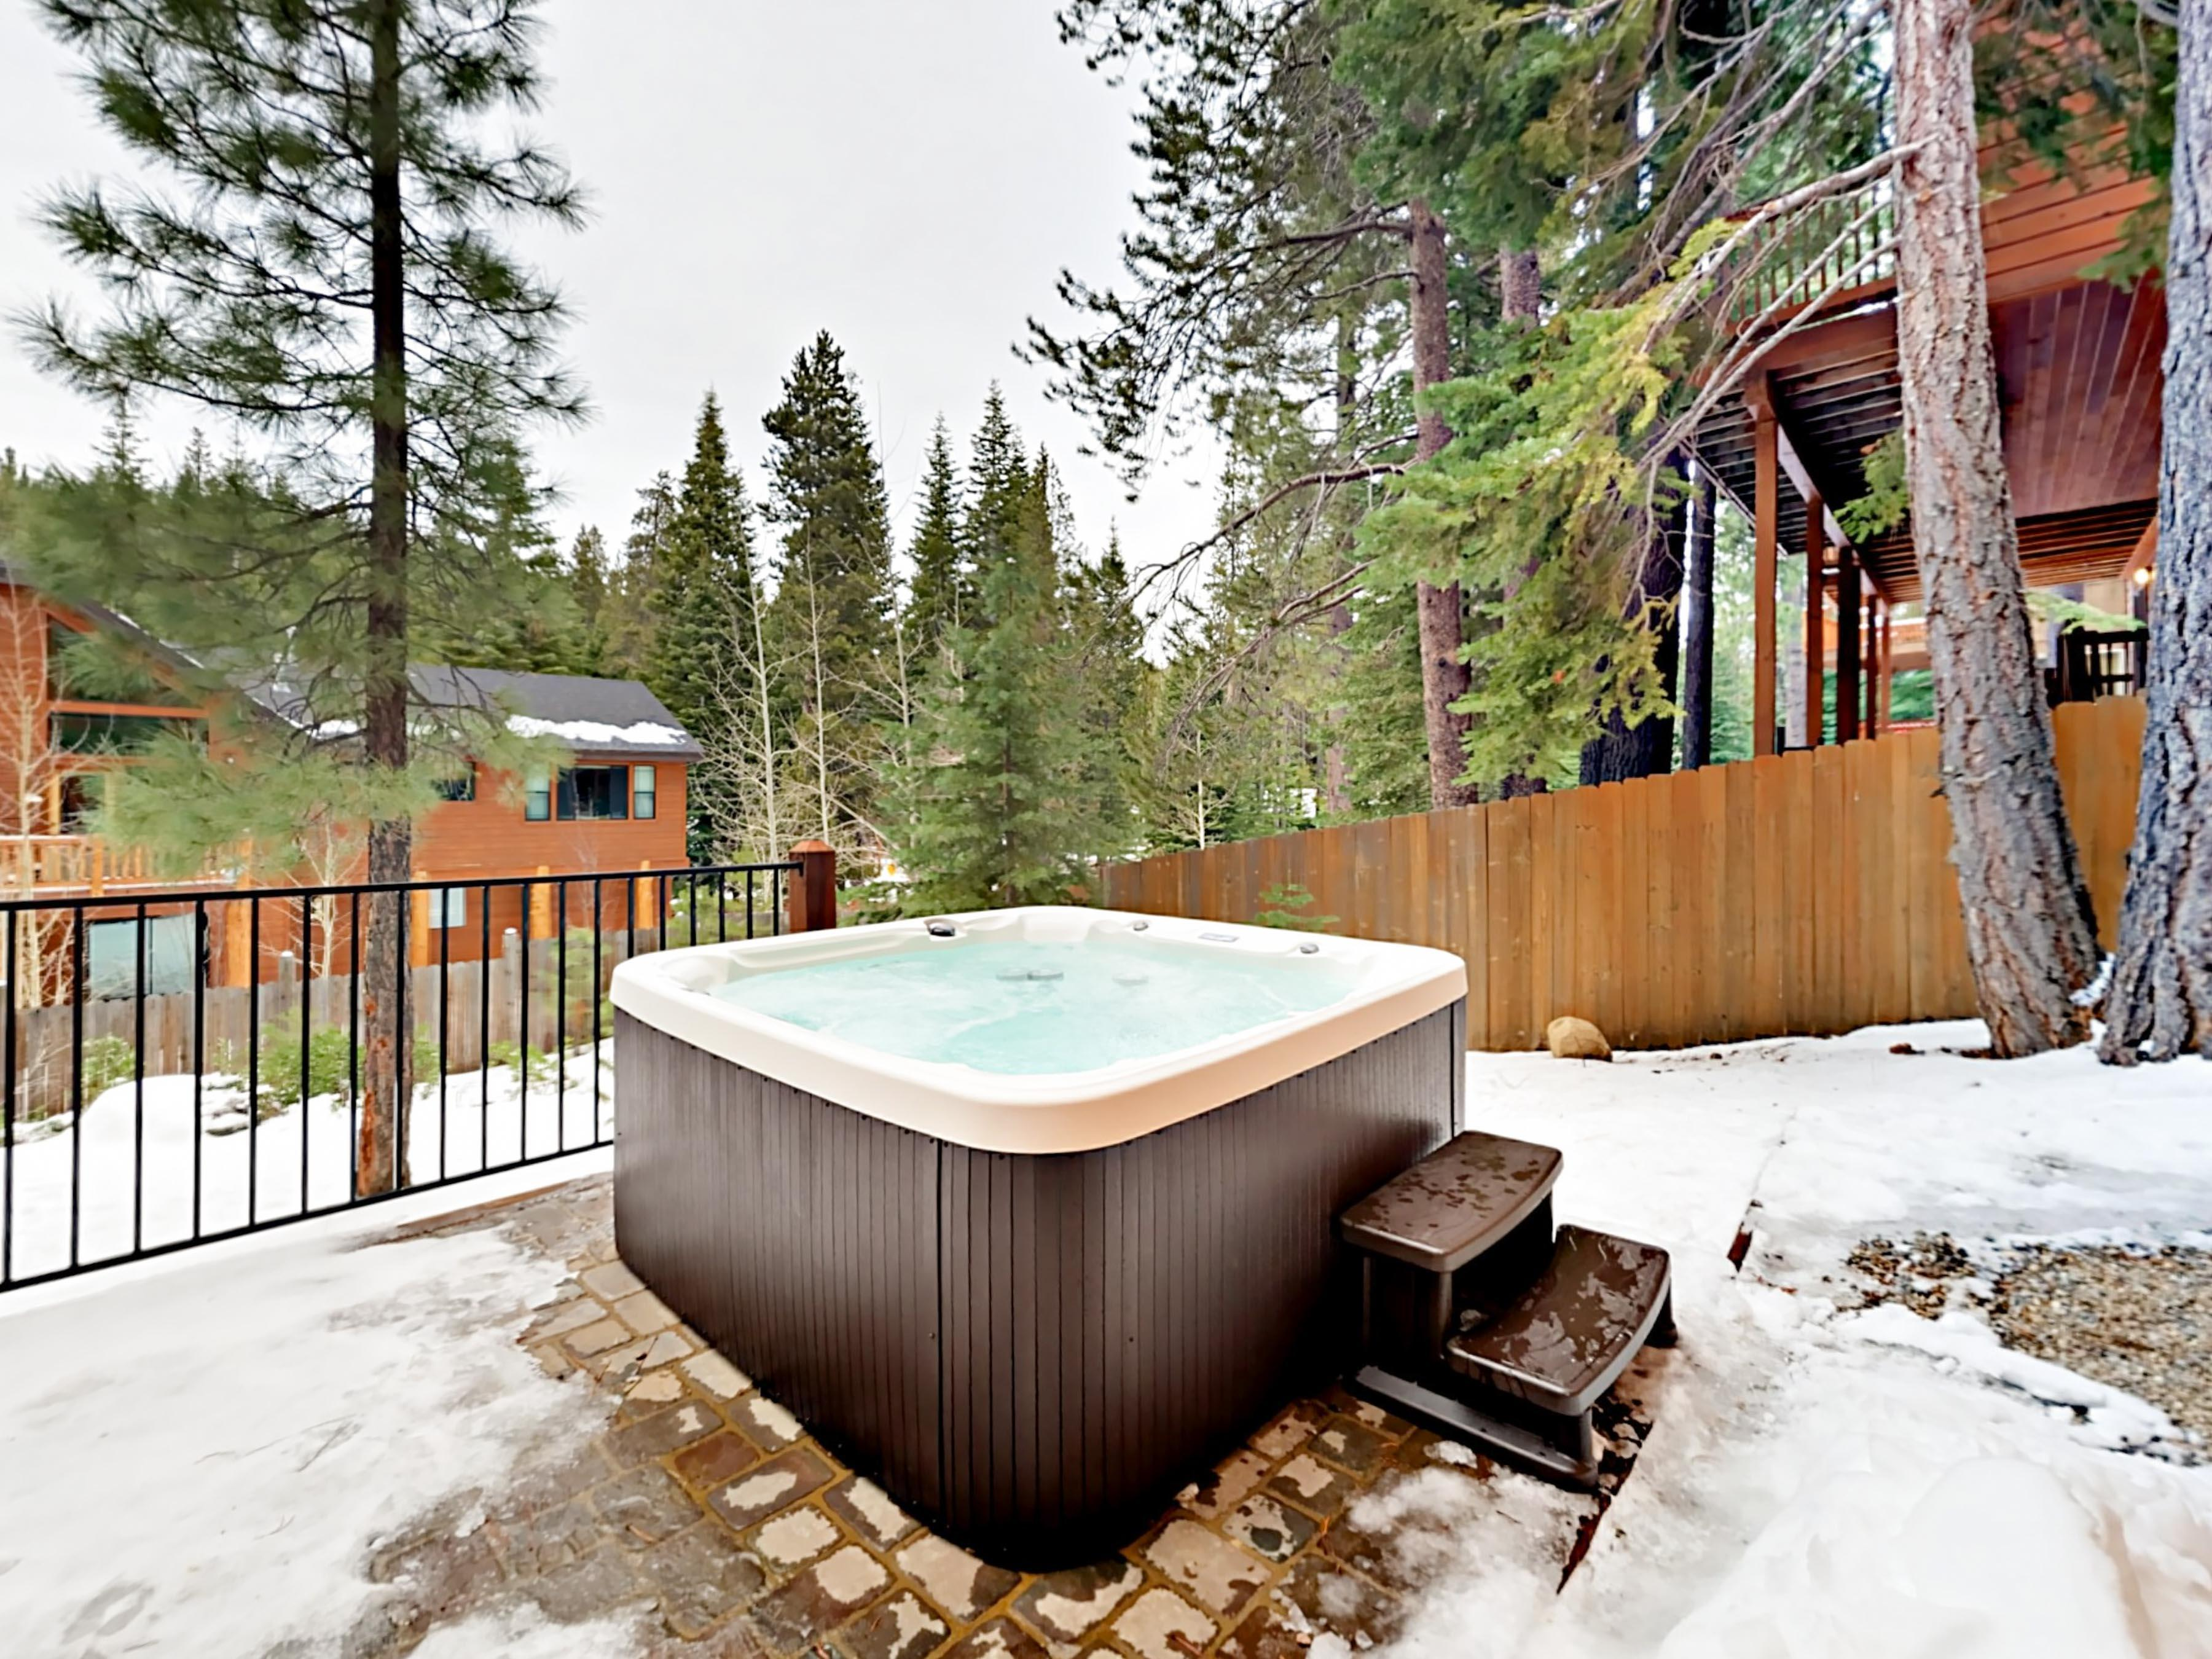 Soak in the private hot tub after a fun day exploring the mountain.